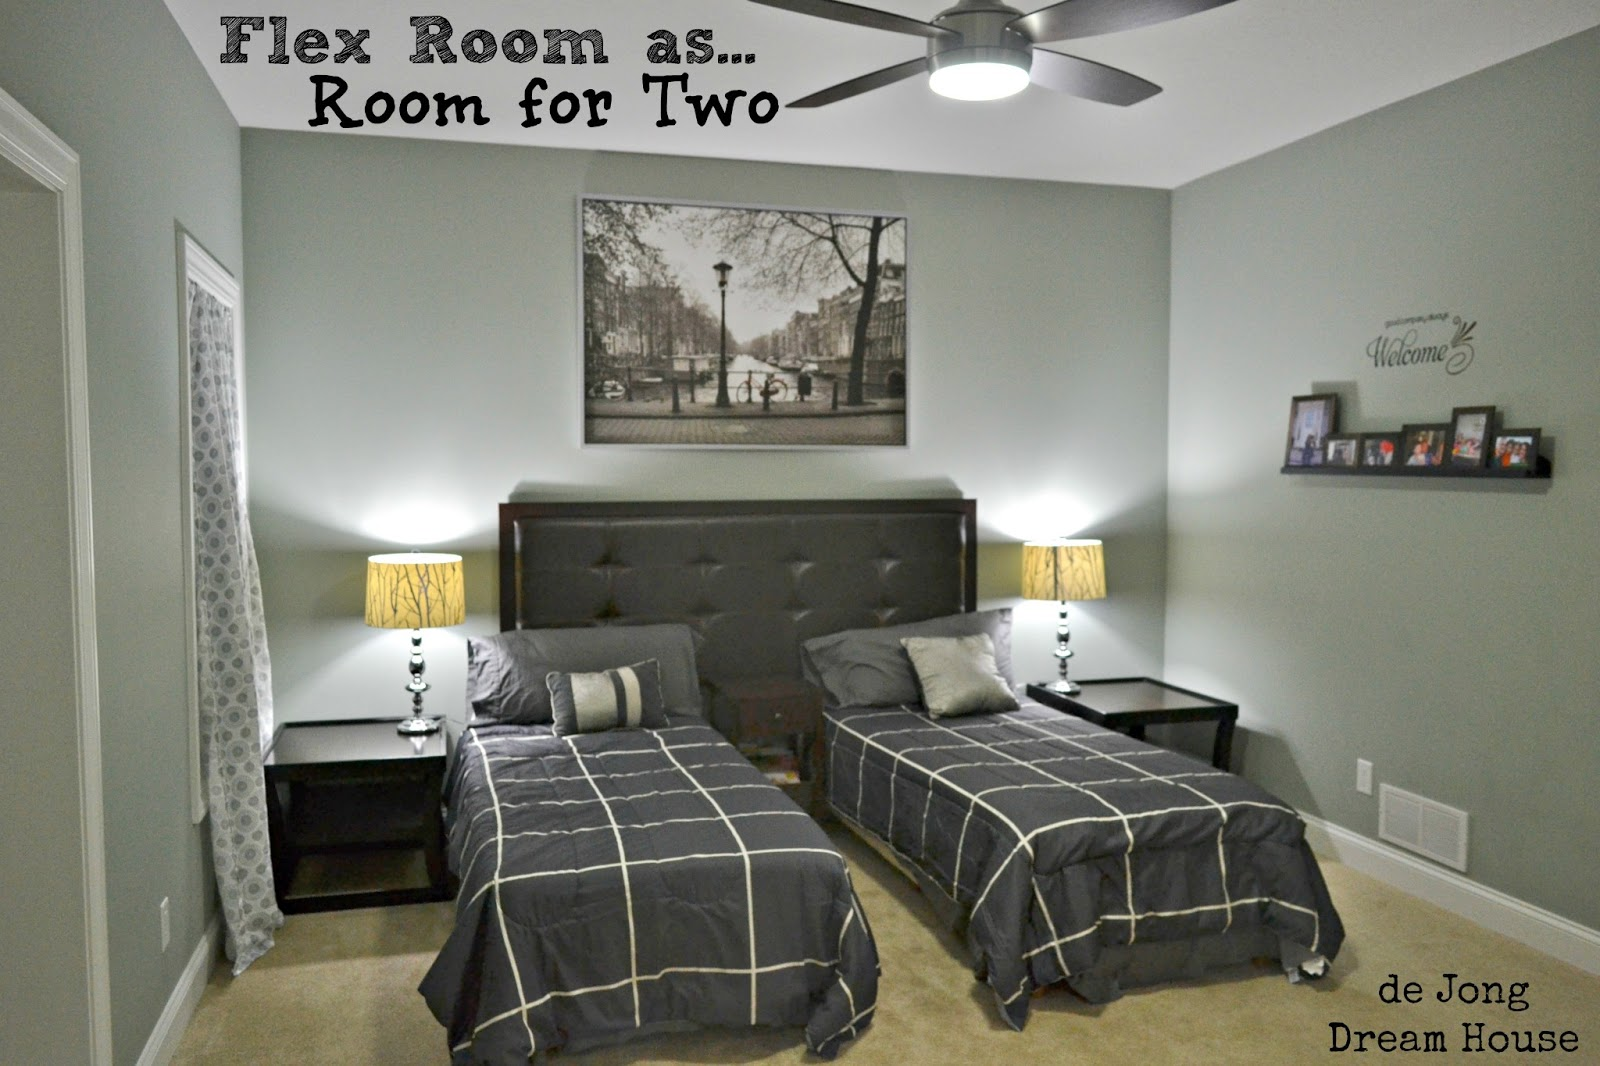 3in1 Flex Room Guest Suite Play Room Room for Two